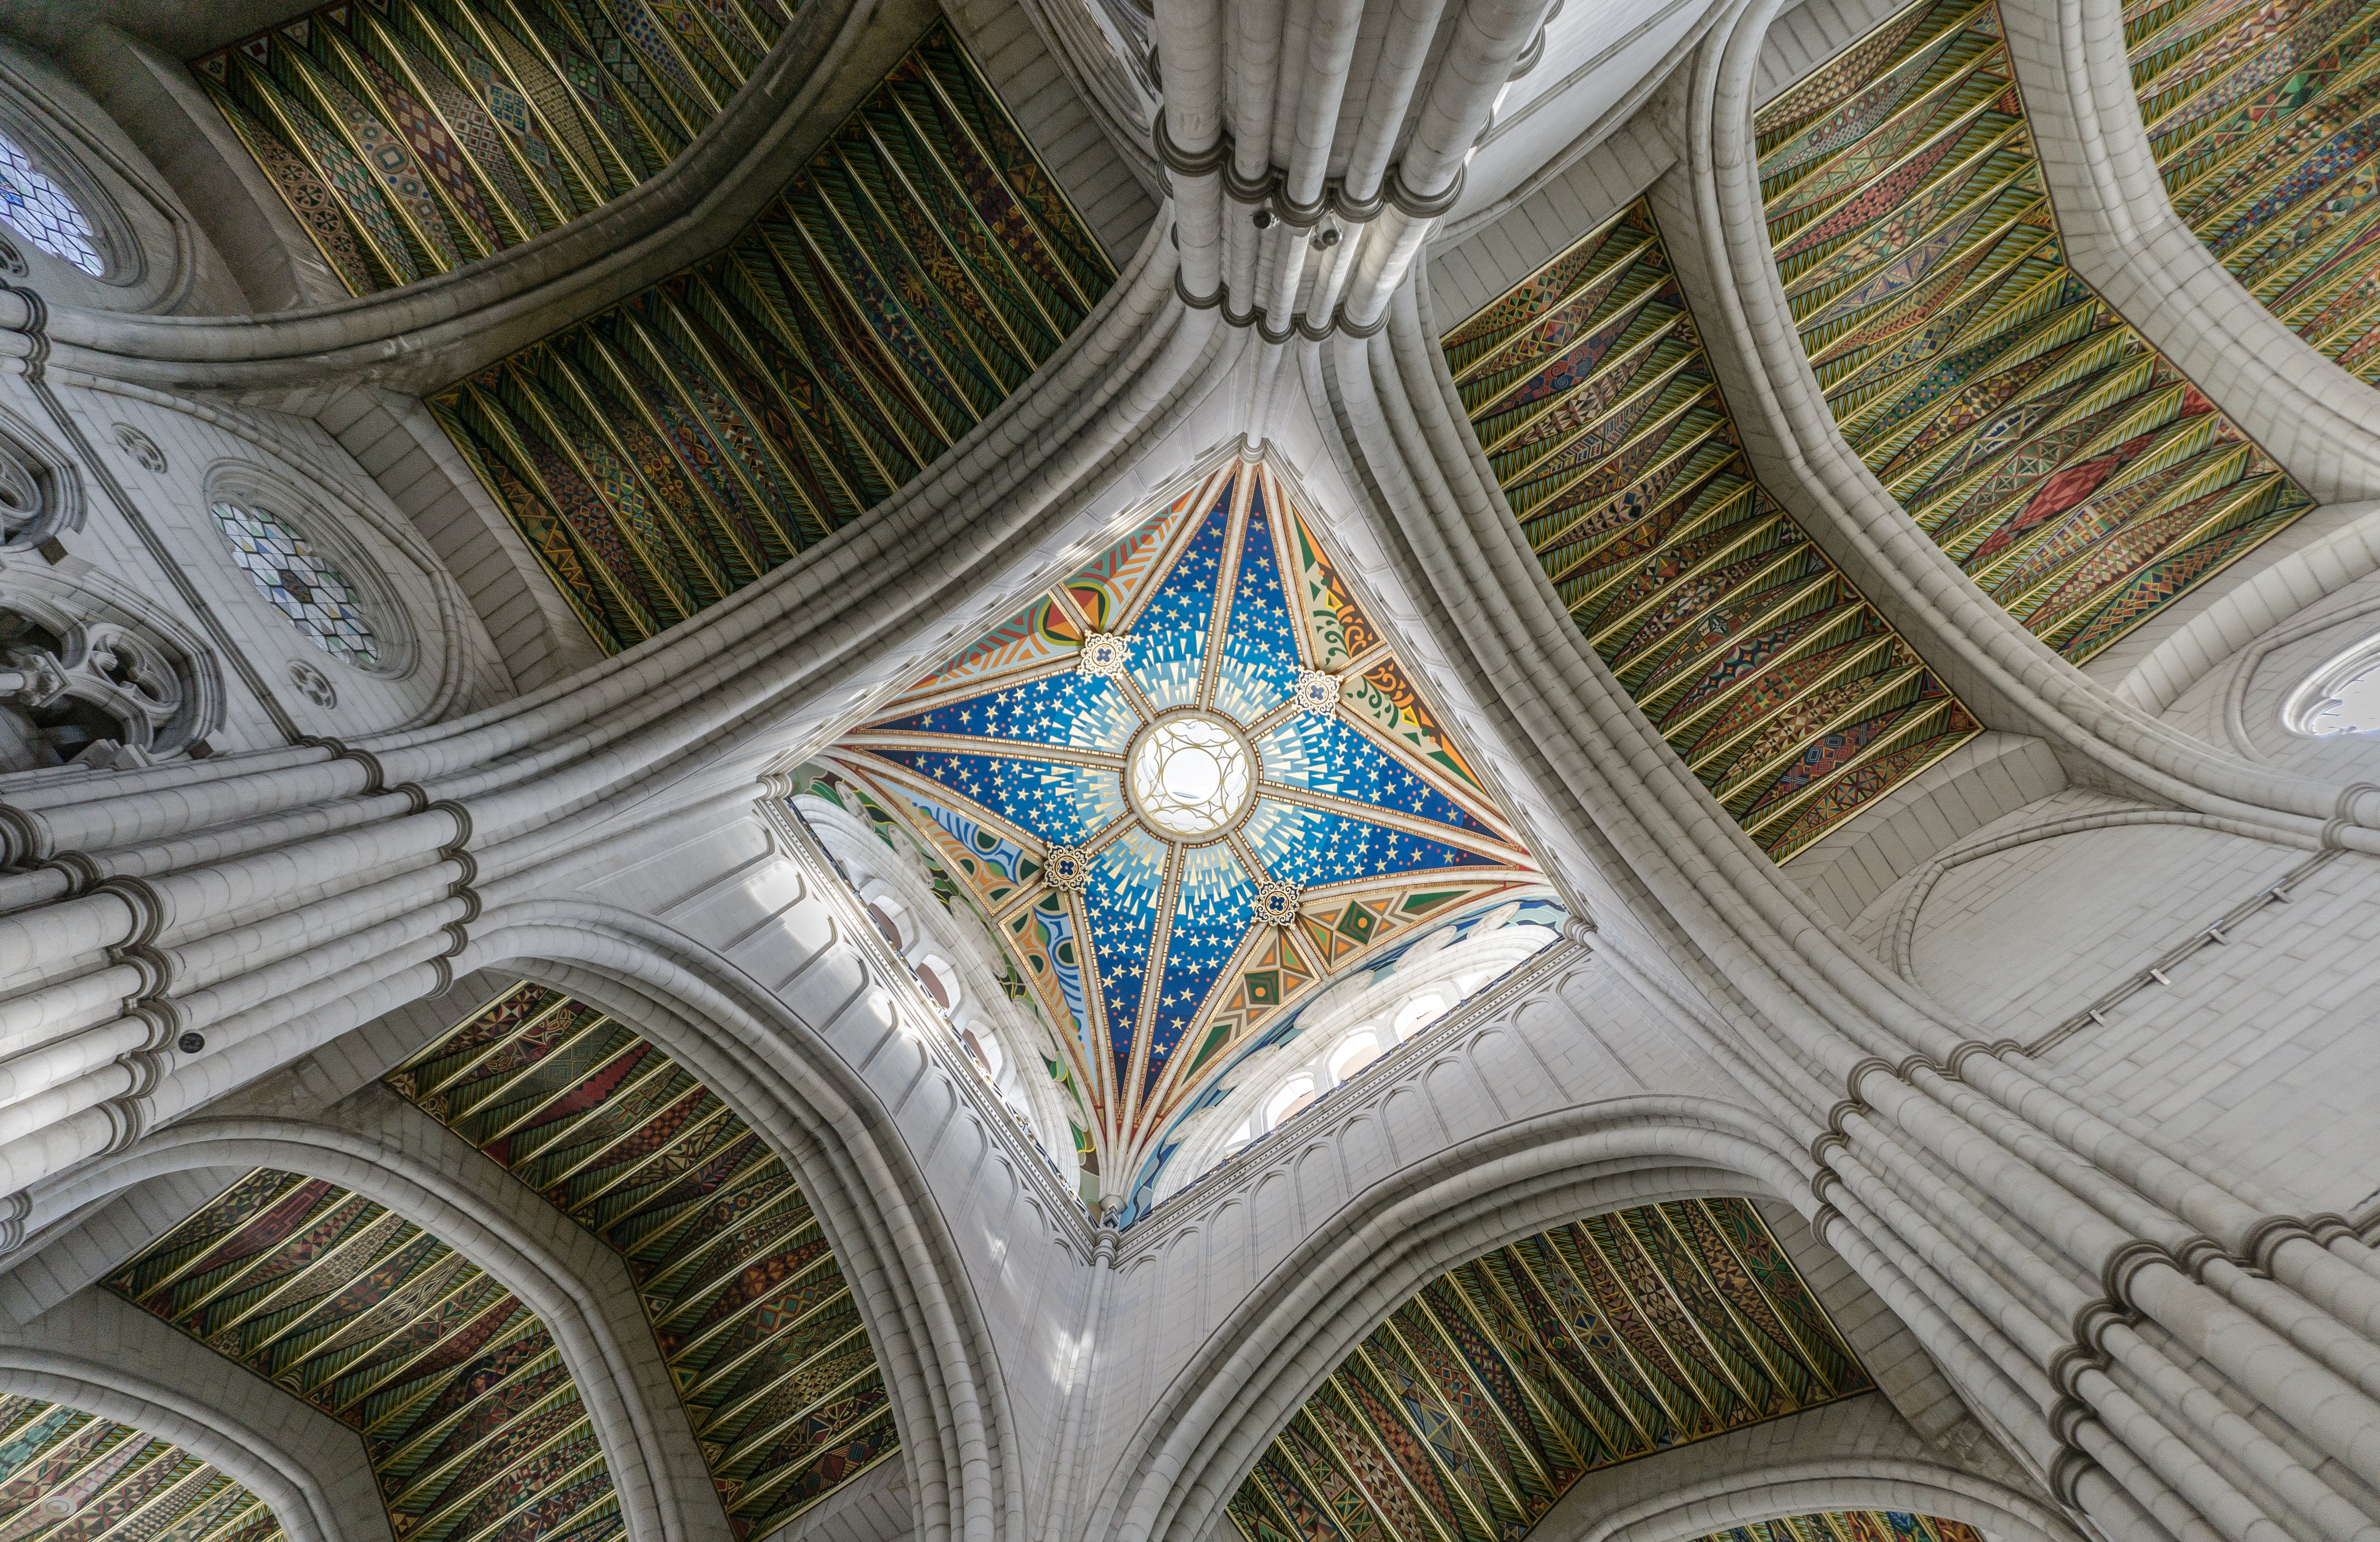 Low Angle Photography of Stained Glass Ceiling